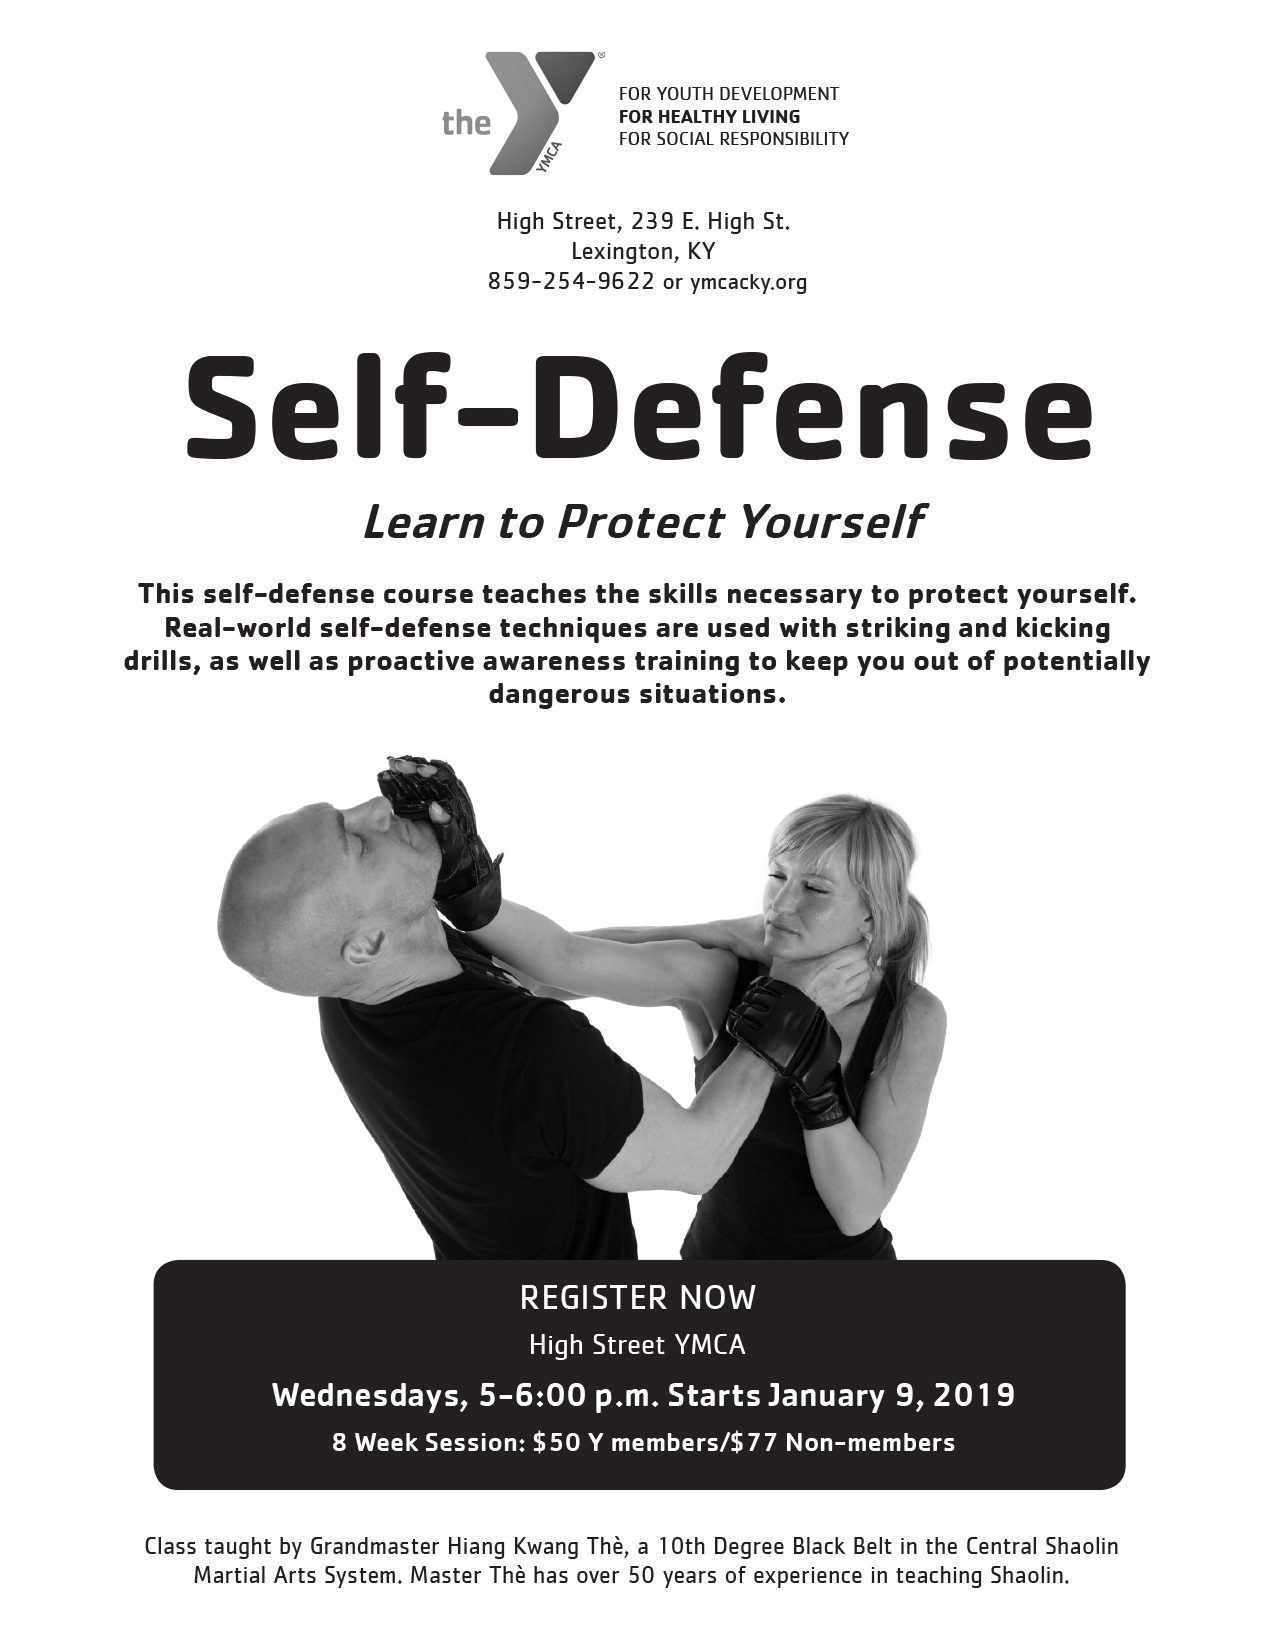 Self-Defense-High-St-January-2019-image